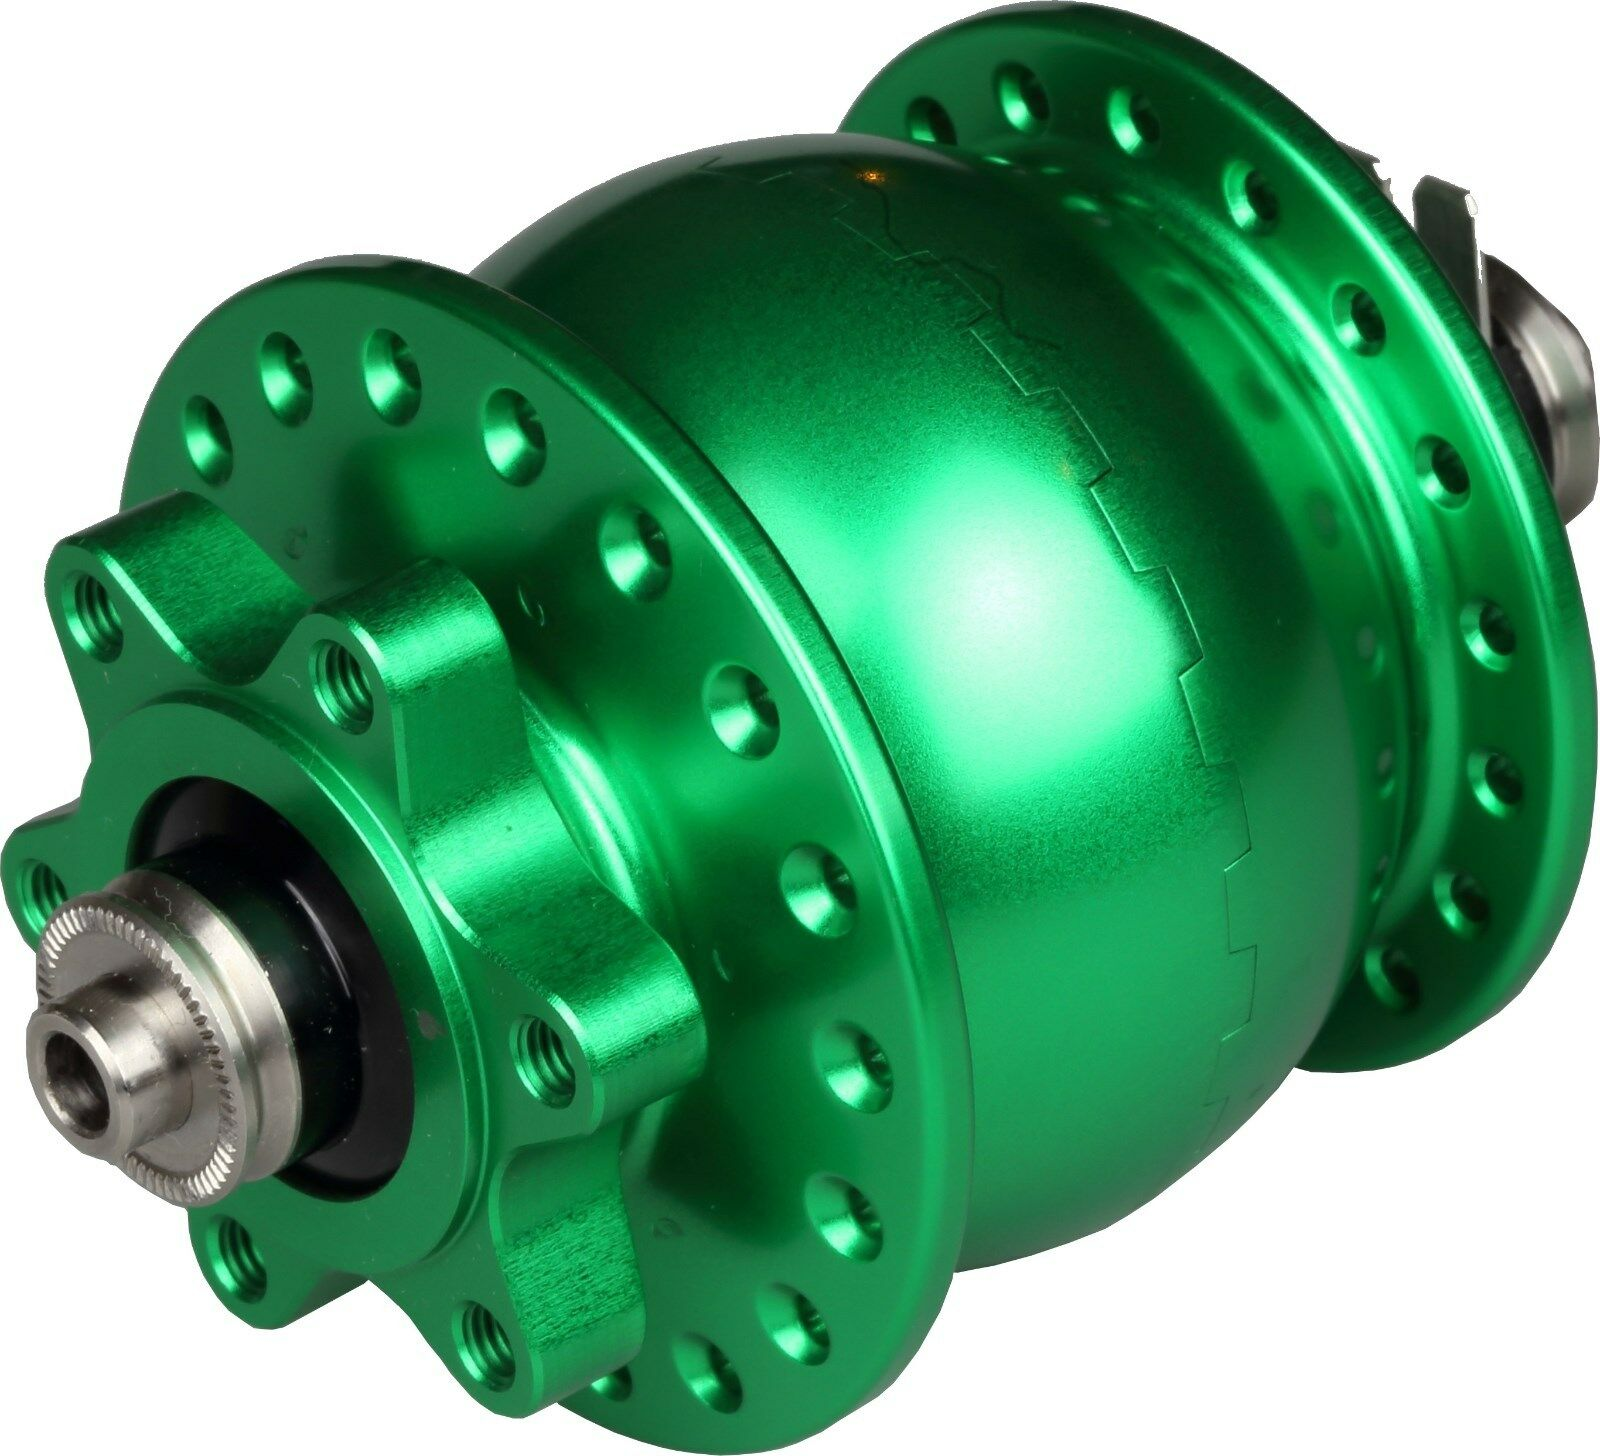 Hub Dynamo Son 28 New 36-hole Green for Disc 6-hole